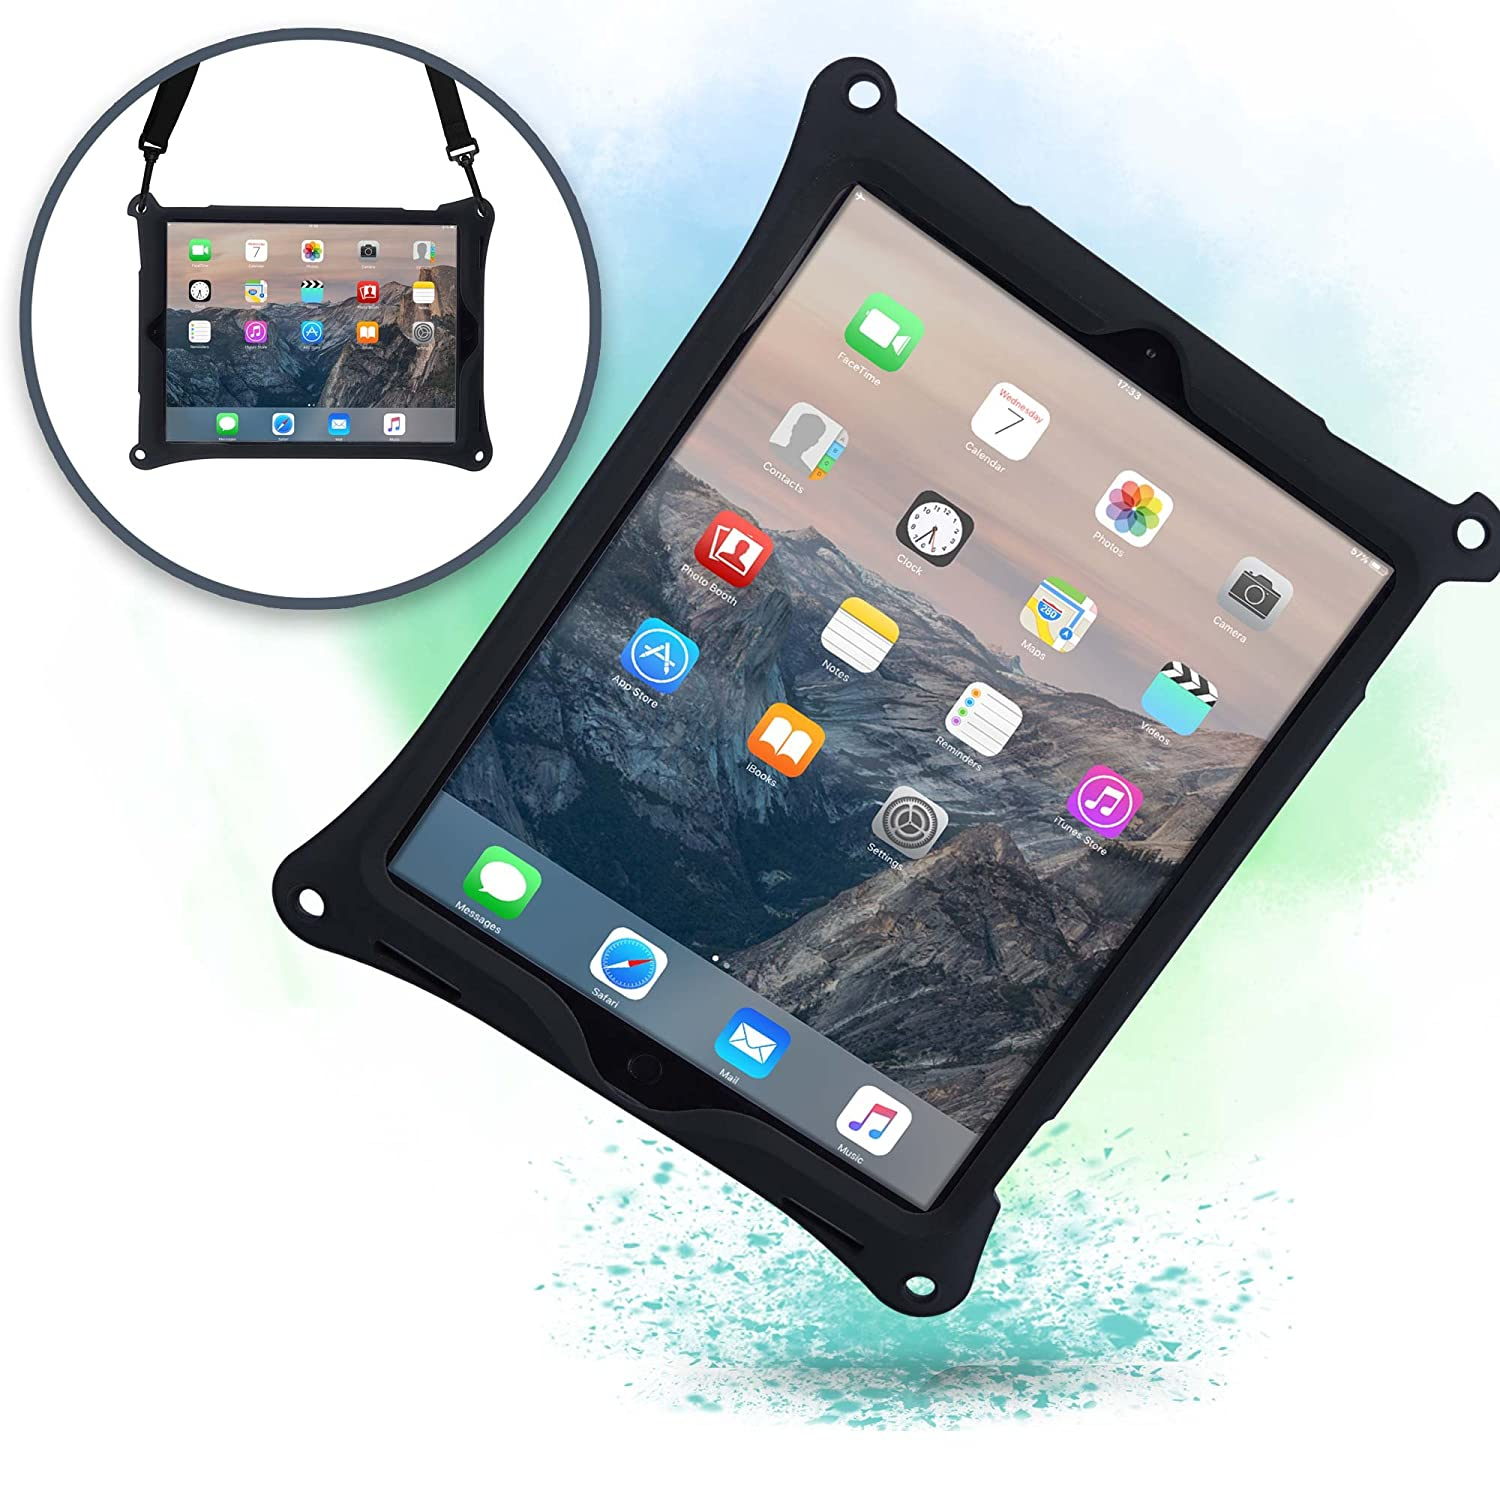 new product f987a f5013 Apple iPad Pro 12.9 case with Stand, Shoulder Strap, Hand Strap | COOPER  BOUNCE STRAP Shock Proof Silicone iPad 12.9 case | Easy to Clean, ...